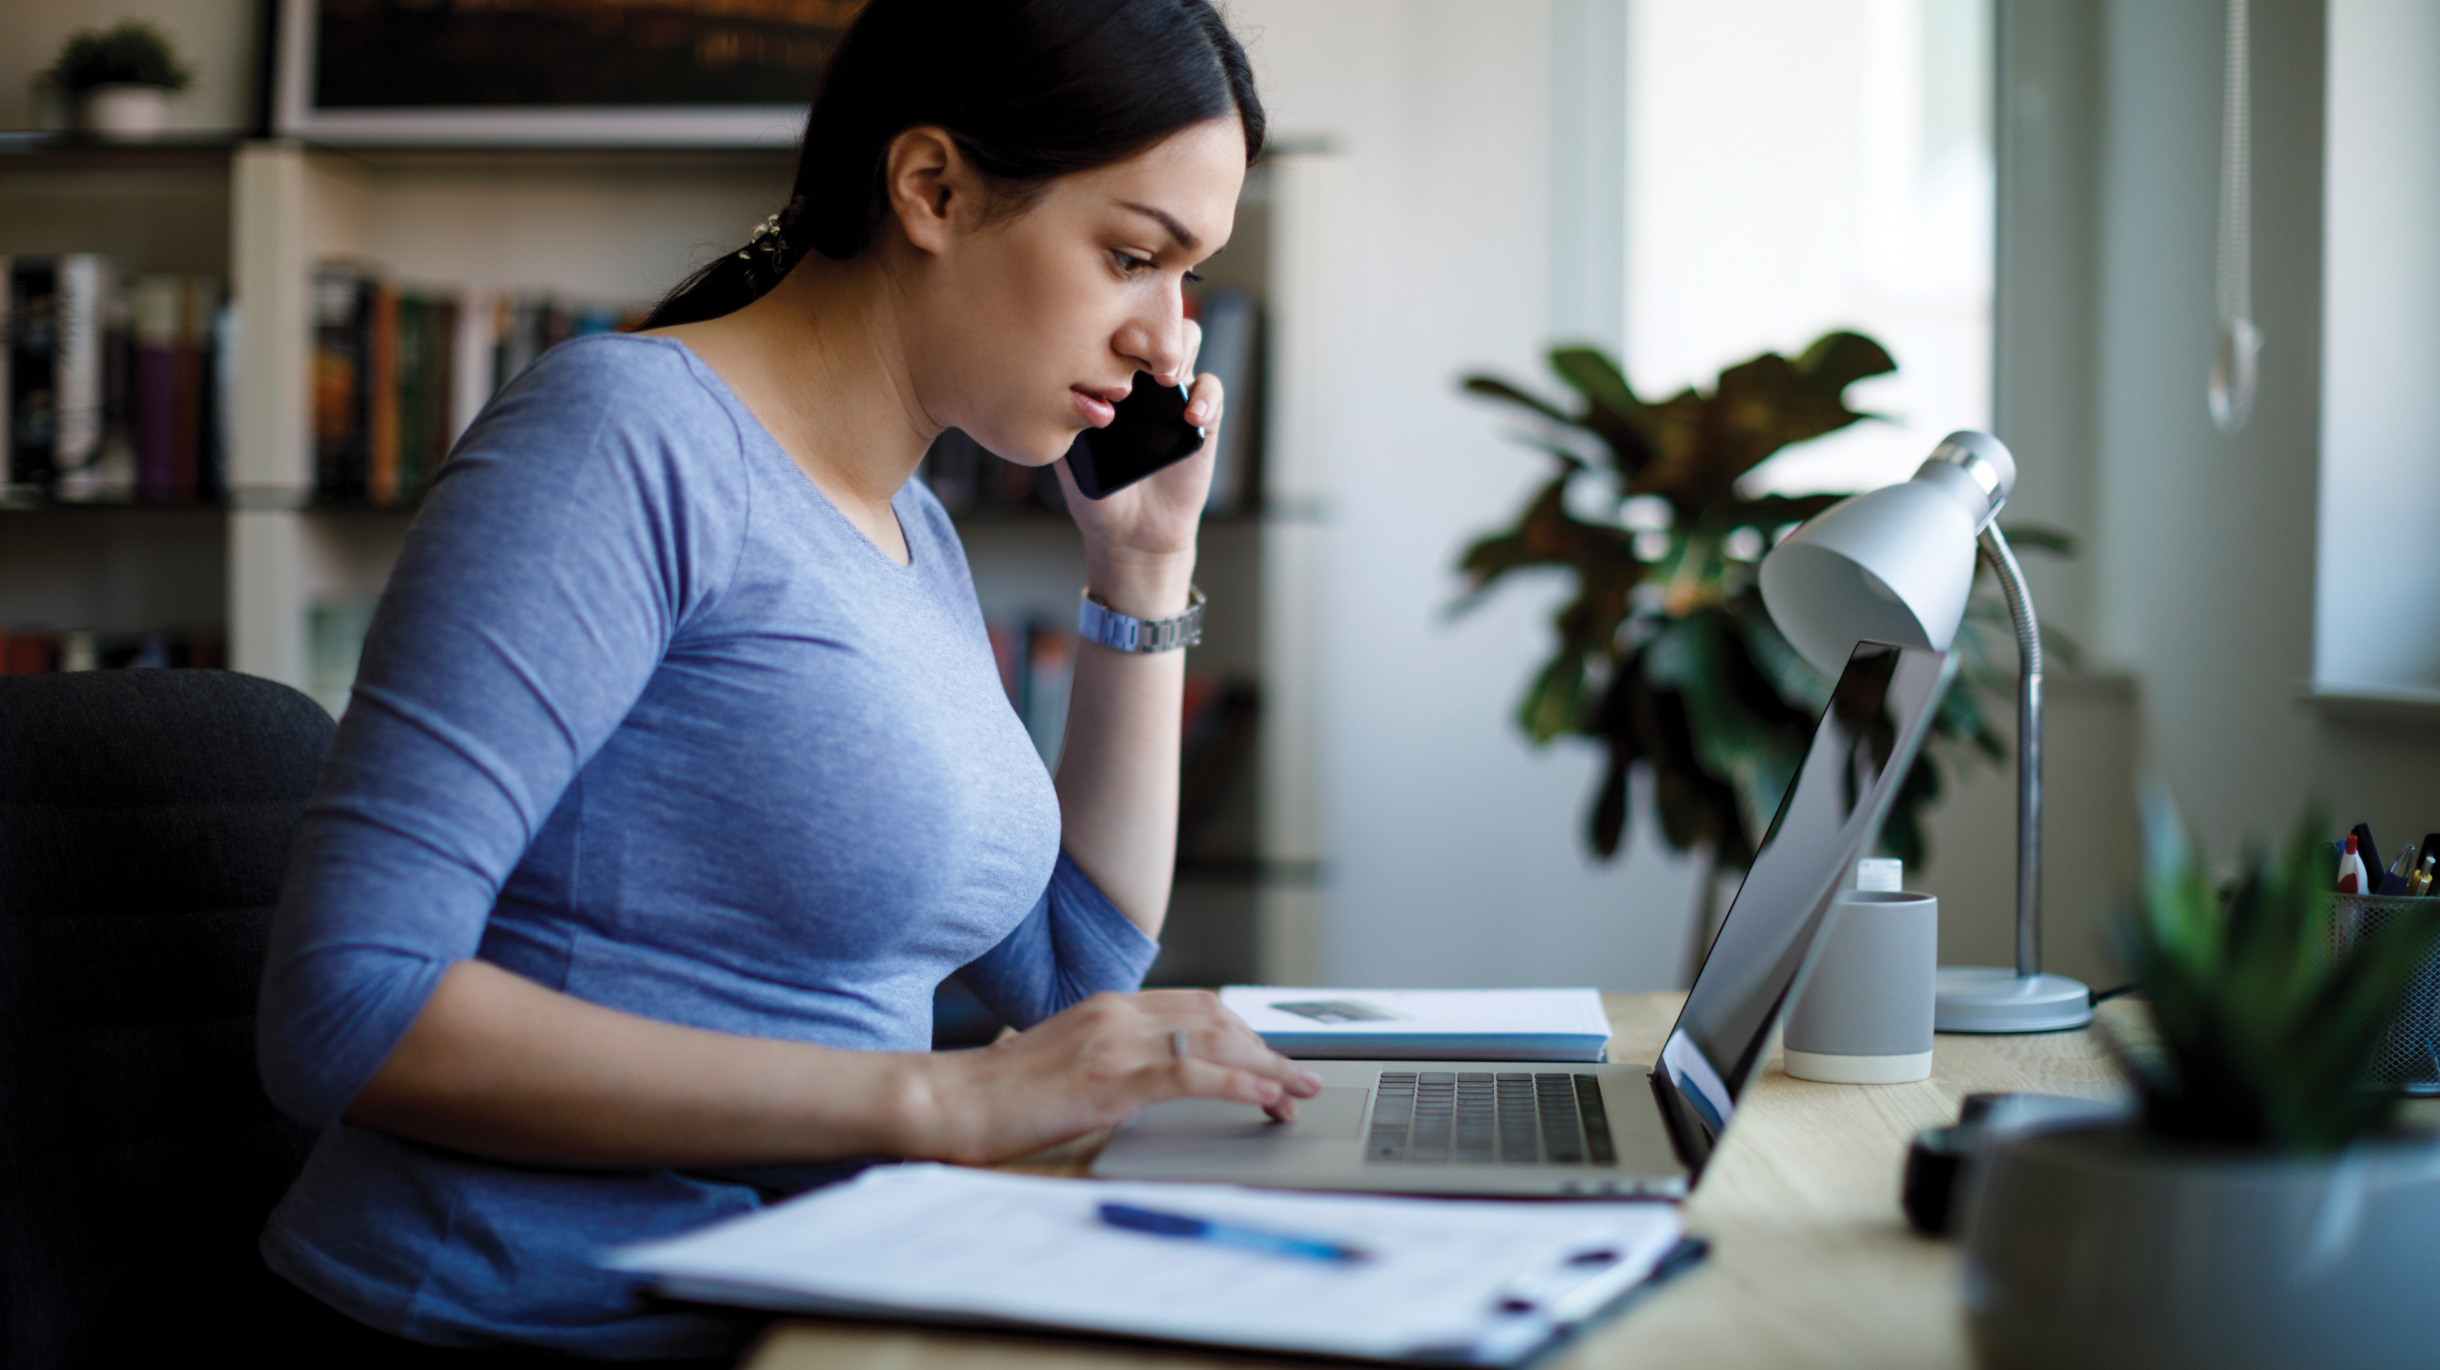 woman on her phone in front of laptop at home desk